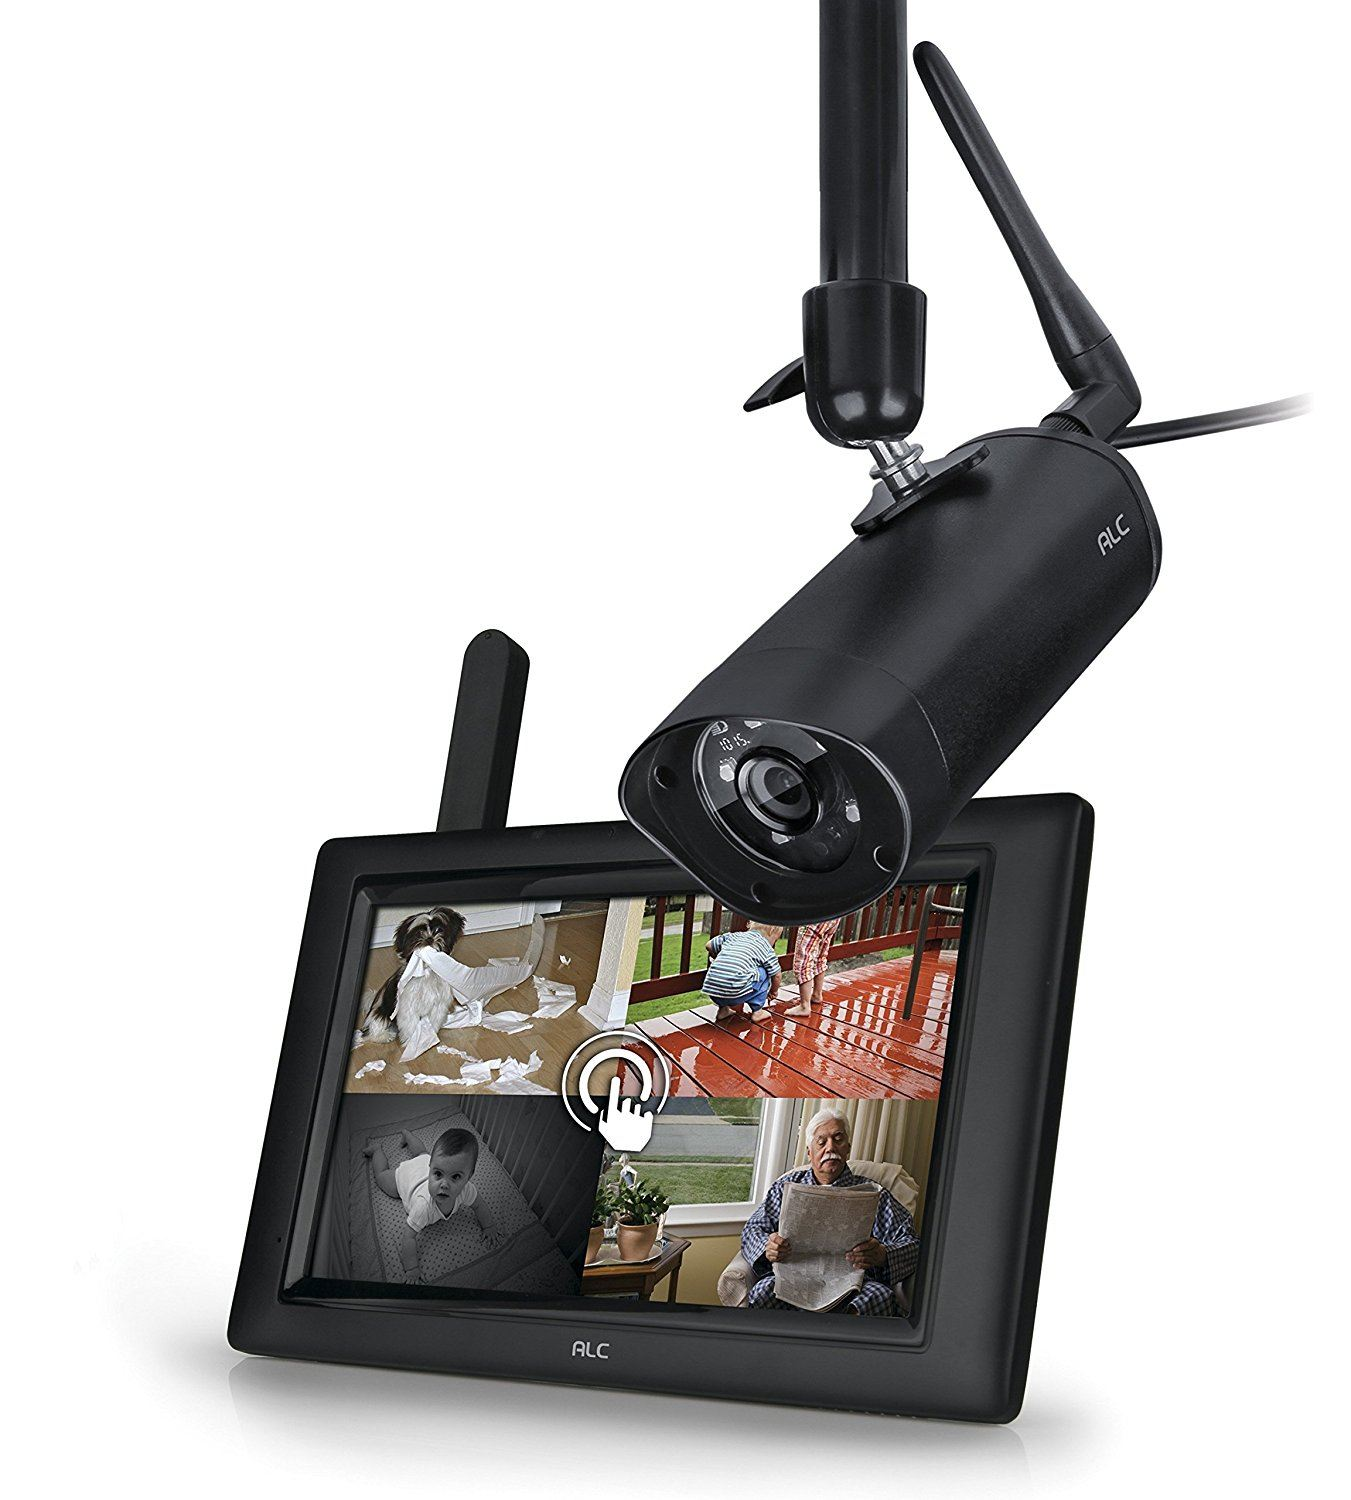 Diy Home Security Camera System Reviews Best Diy Security Camera System Guide And Reviews